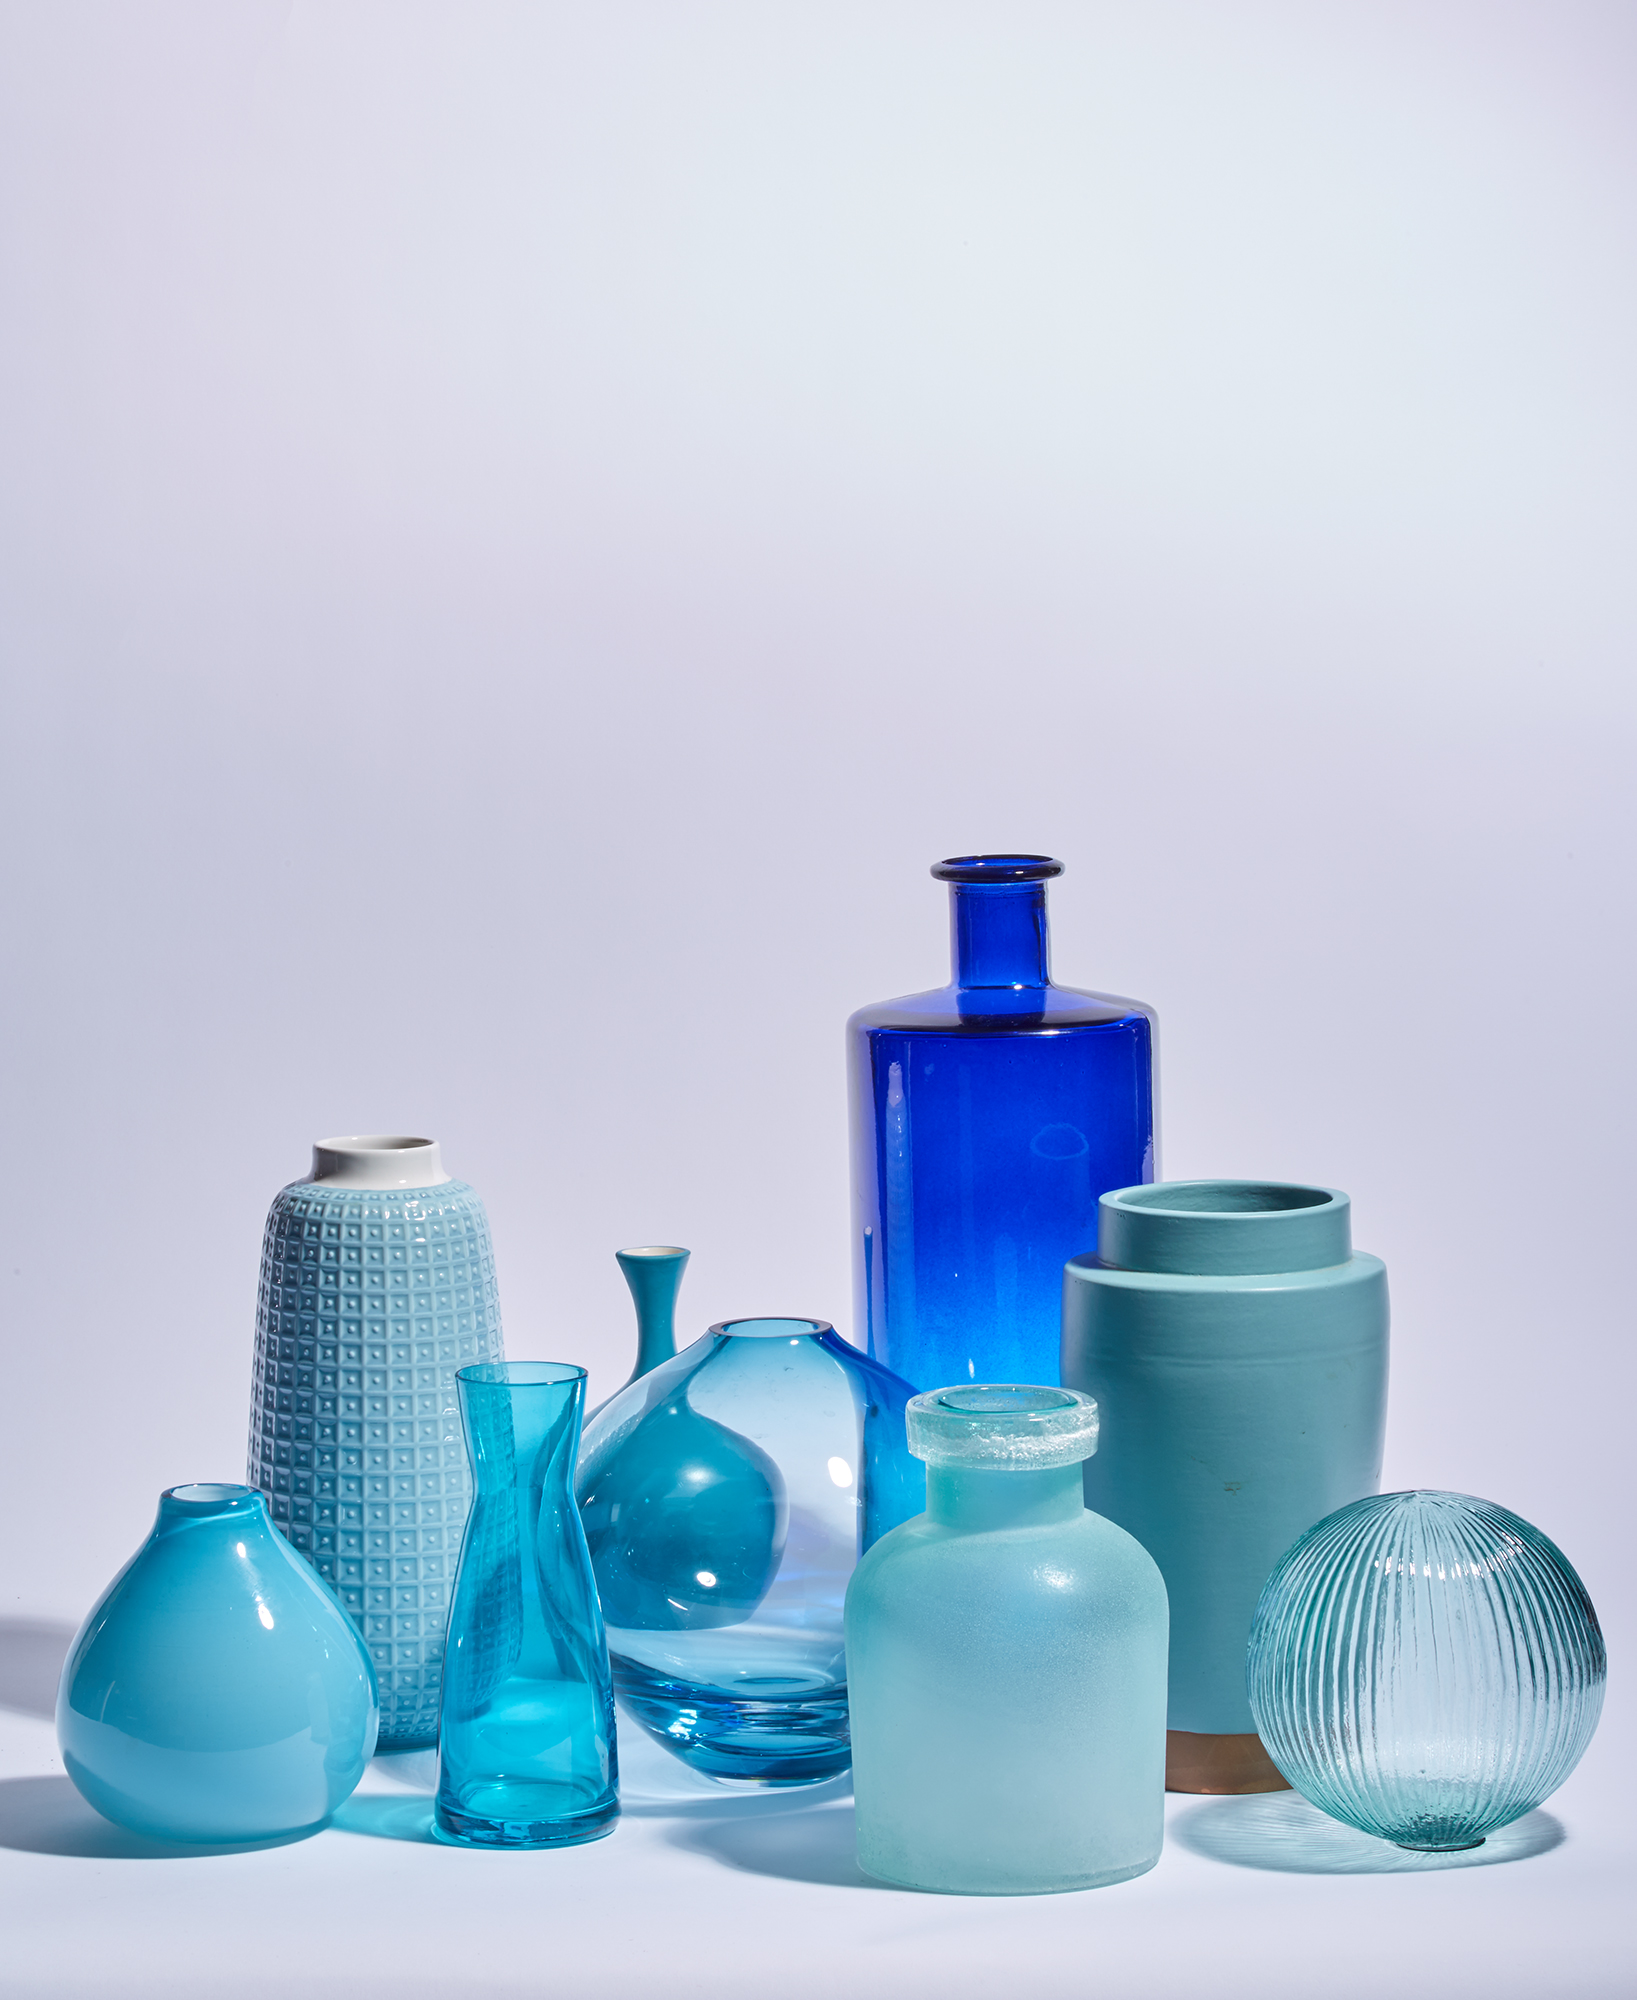 20180302_VARIOUS_VESSELS_AND_VASES.jpg